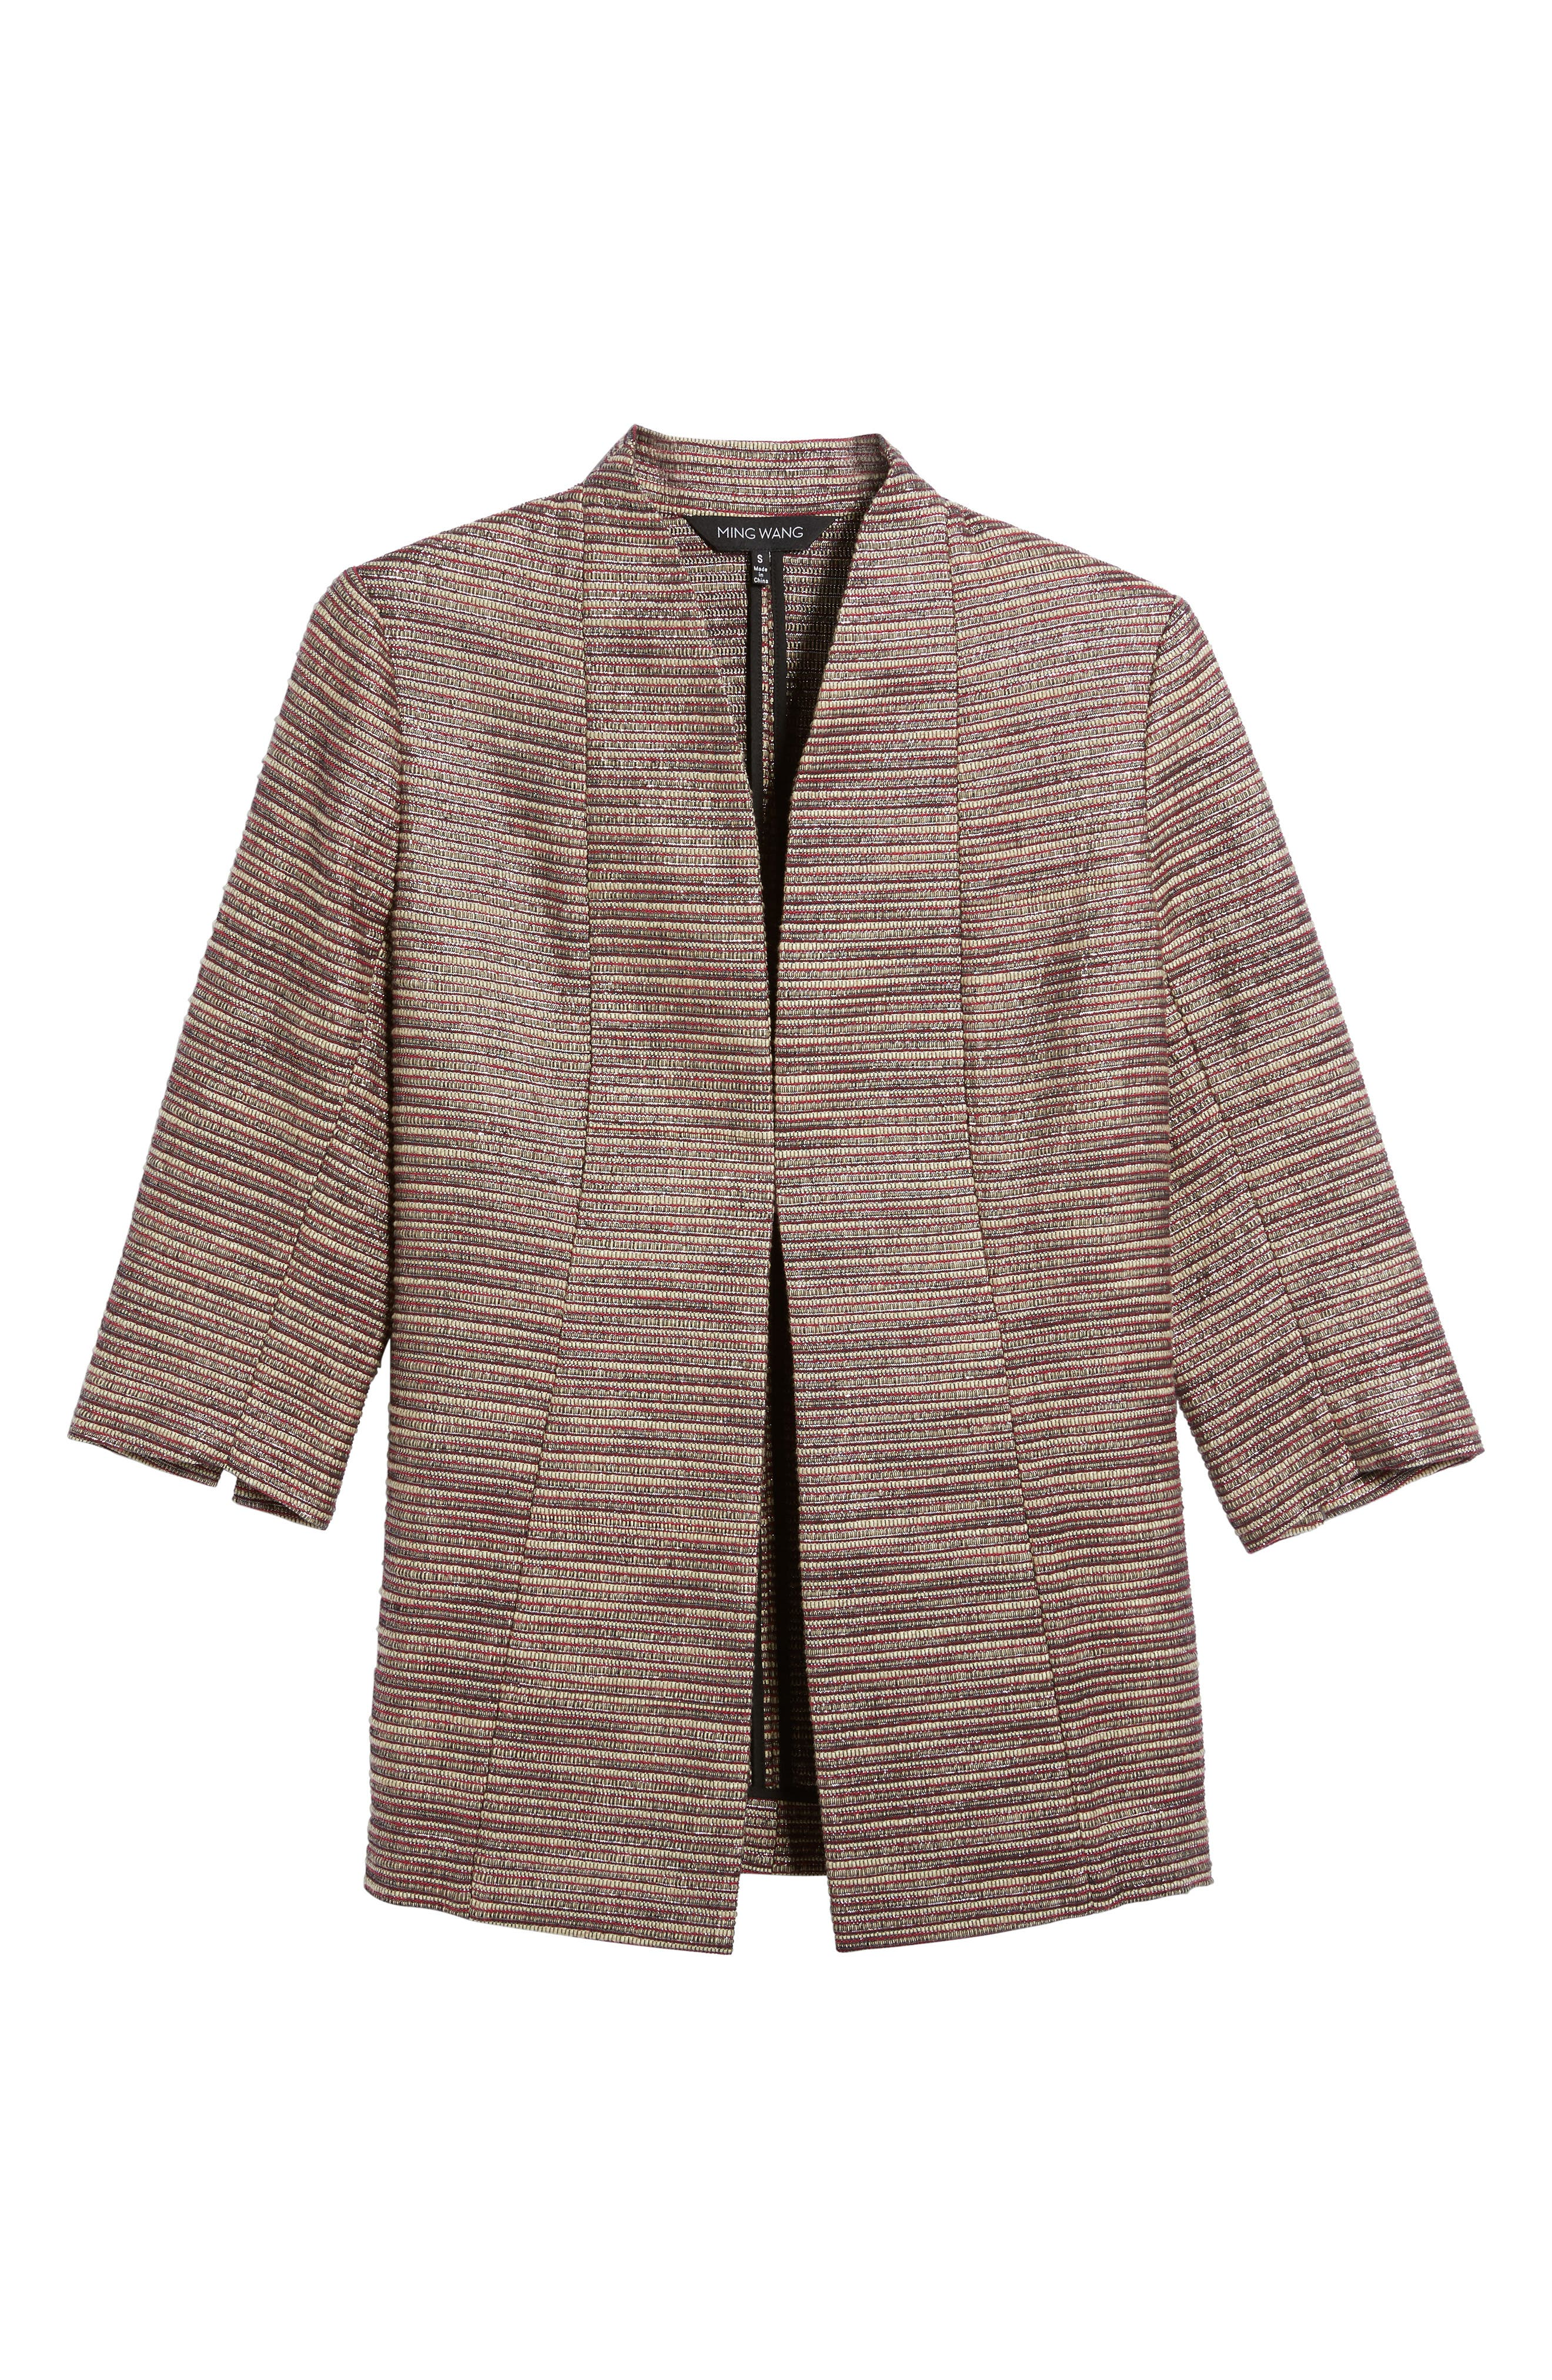 Ribbed Metallic Tweed Jacket,                             Alternate thumbnail 5, color,                             657